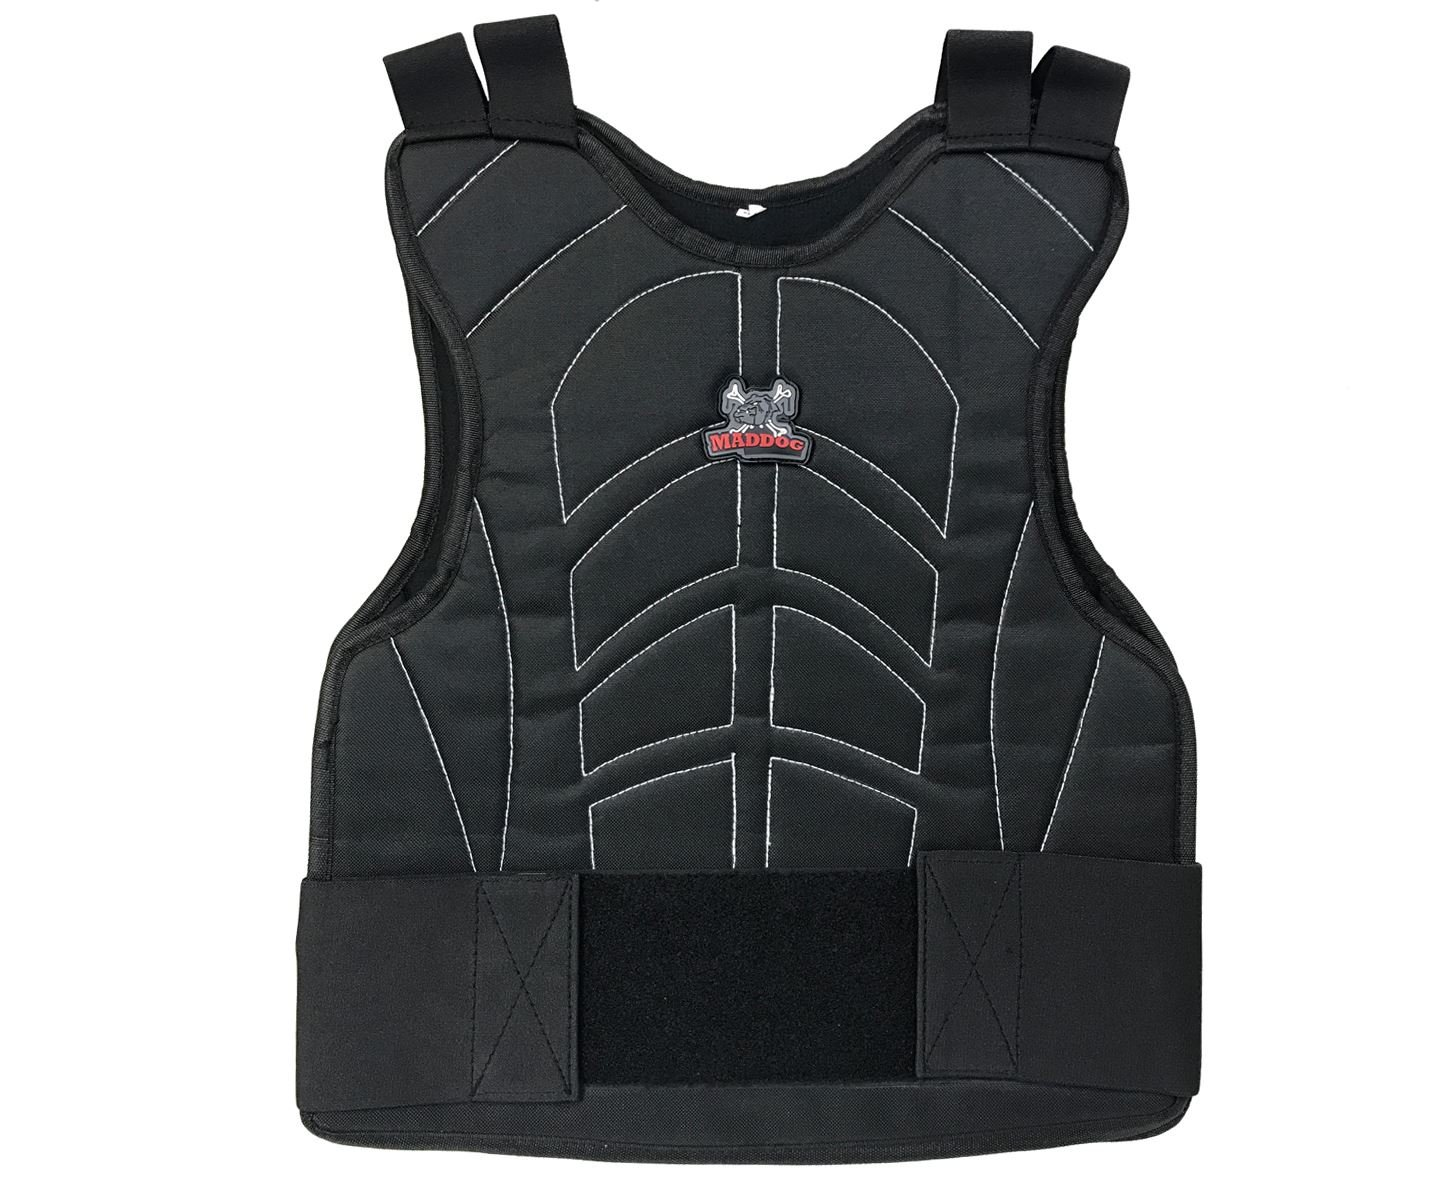 Maddog Padded Paintball and Airsoft Chest Protector with Adjustable Elastic Straps - Black by Maddog